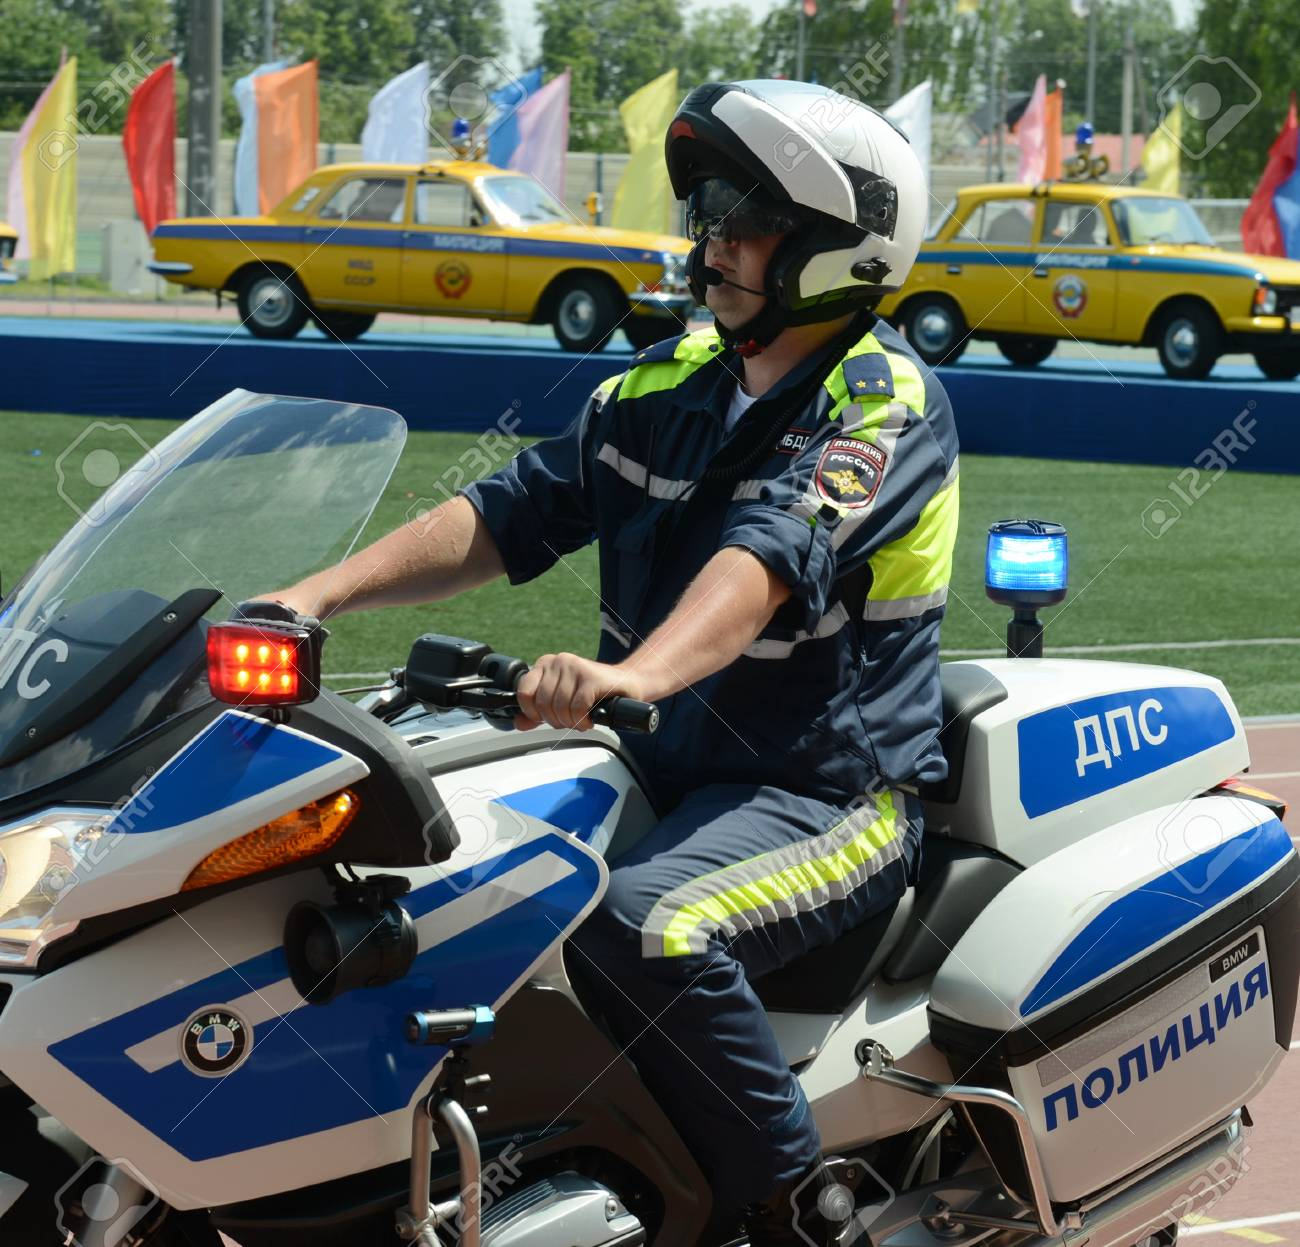 The Inspector Of Traffic Police Motorcycle Bmw Leaves To Patrol Stock Photo Picture And Royalty Free Image Image 75600487